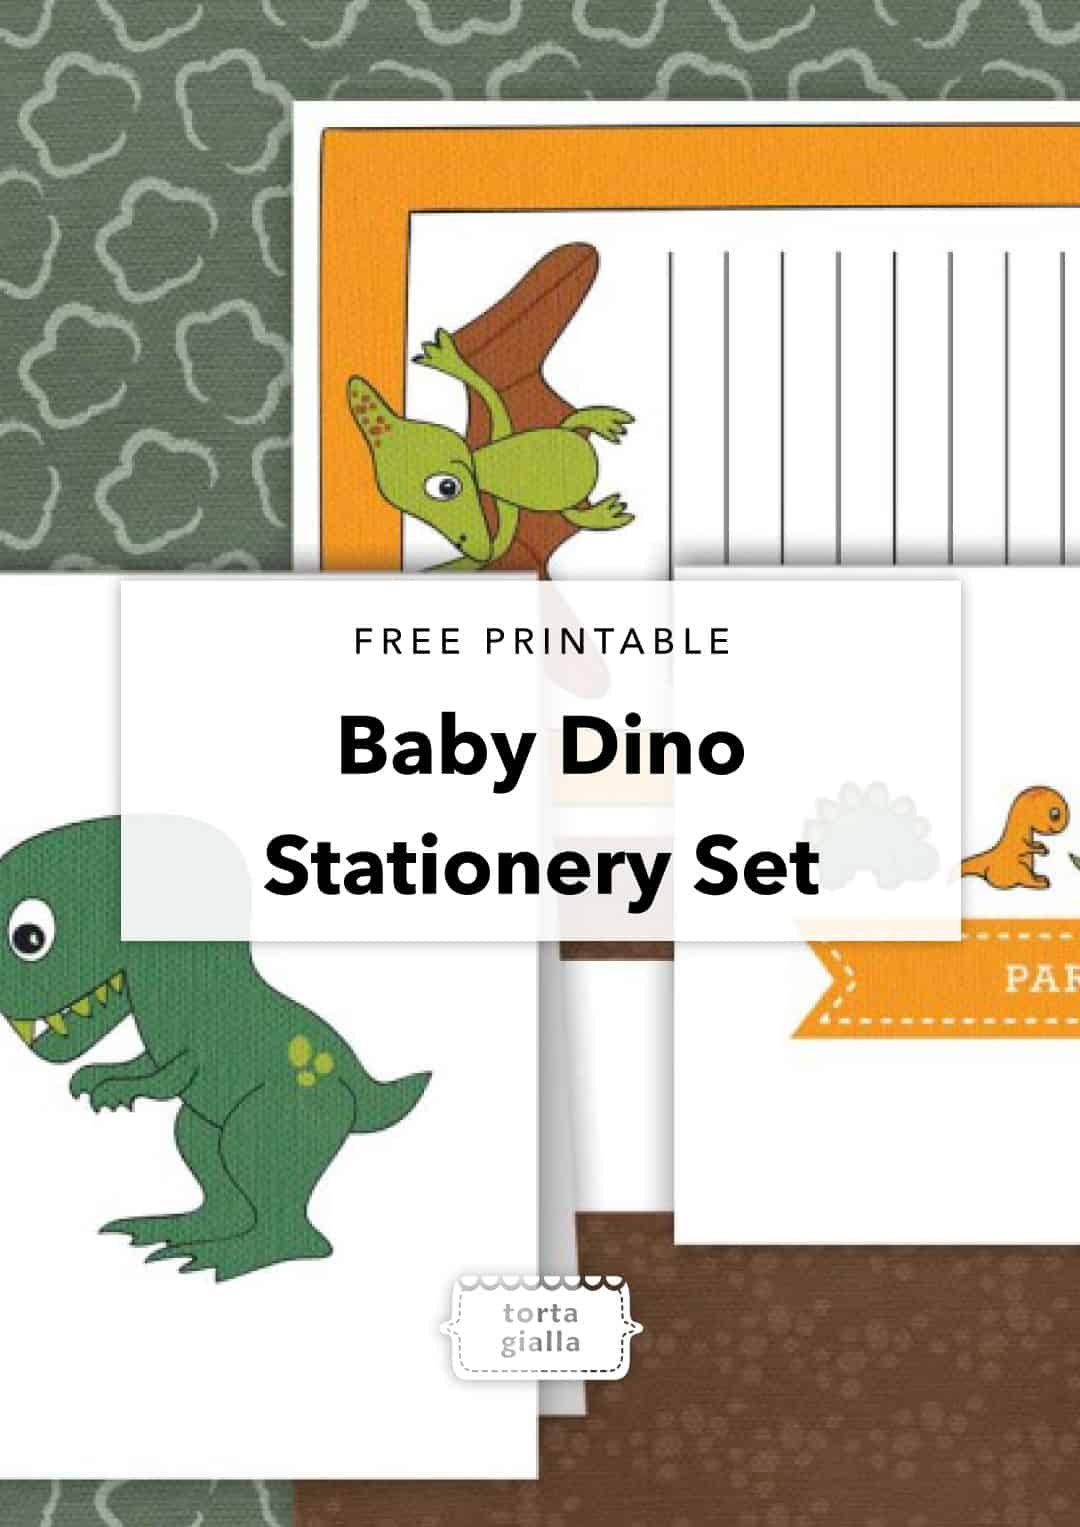 free printable baby dino stationery set